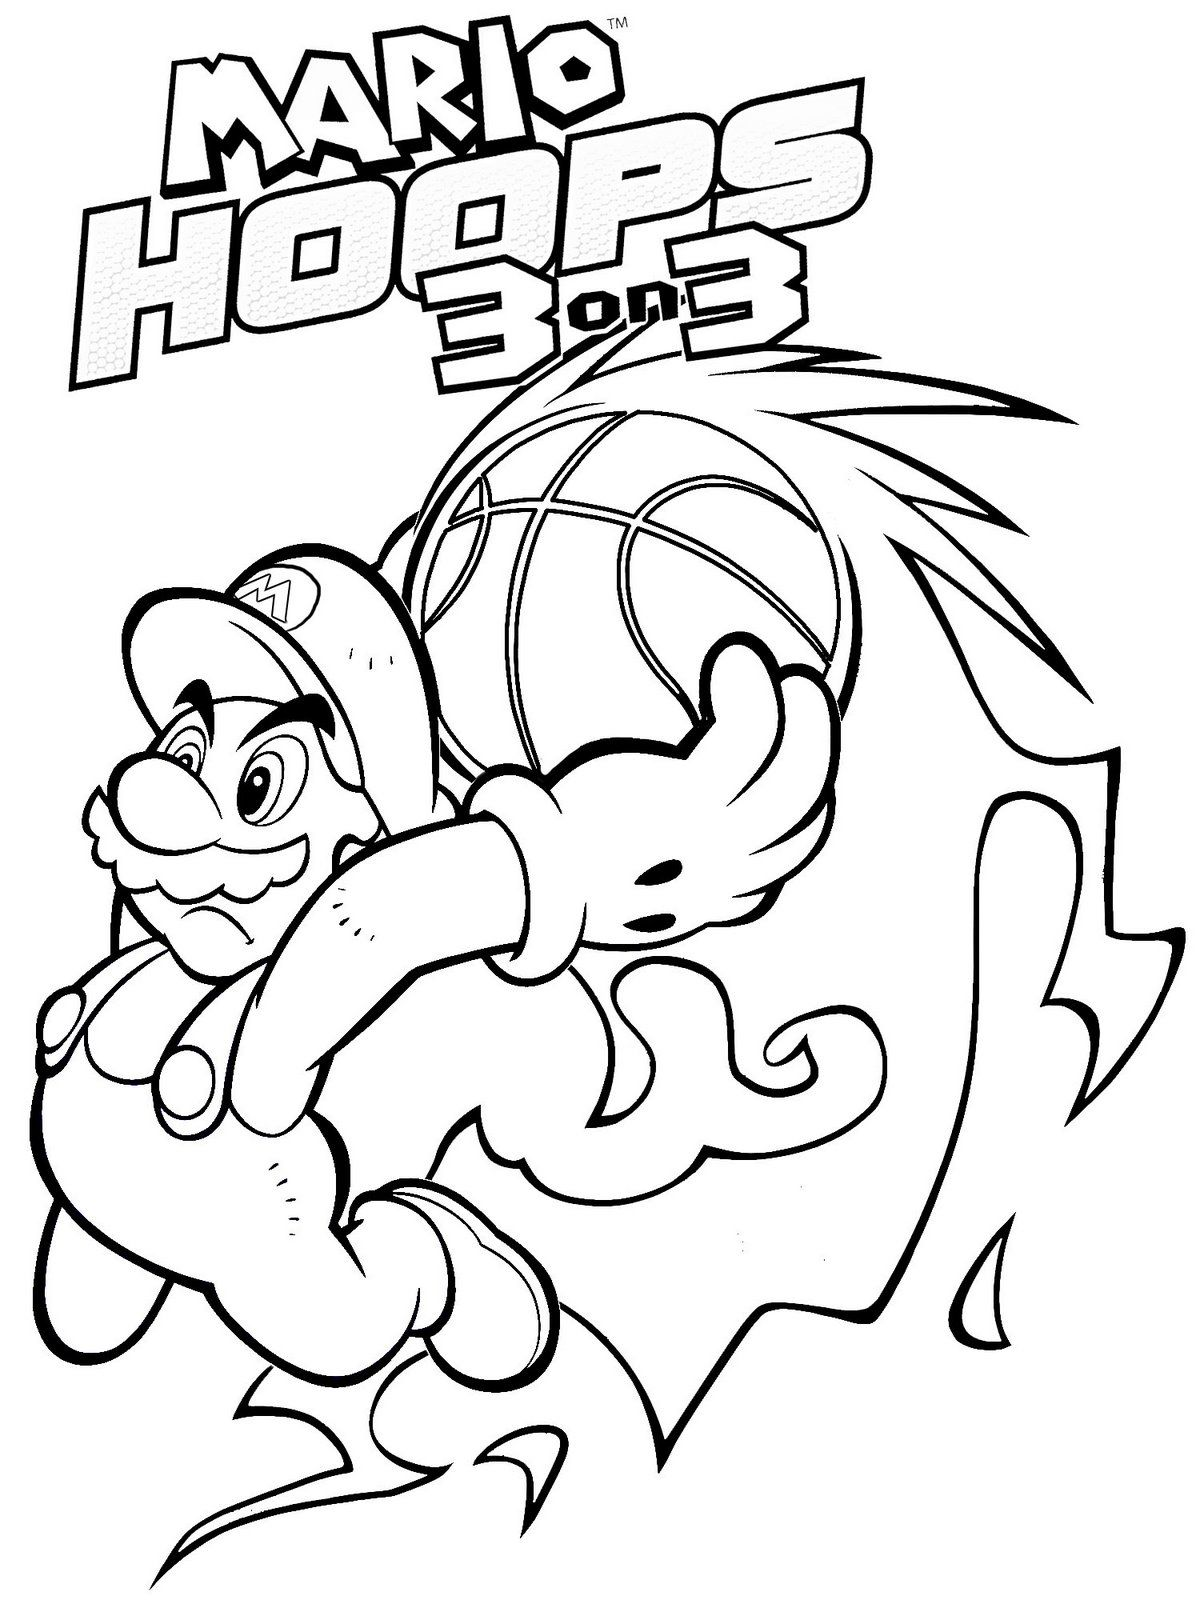 Mario bros coloring pages - New Super Mario Bros Coloring Pages